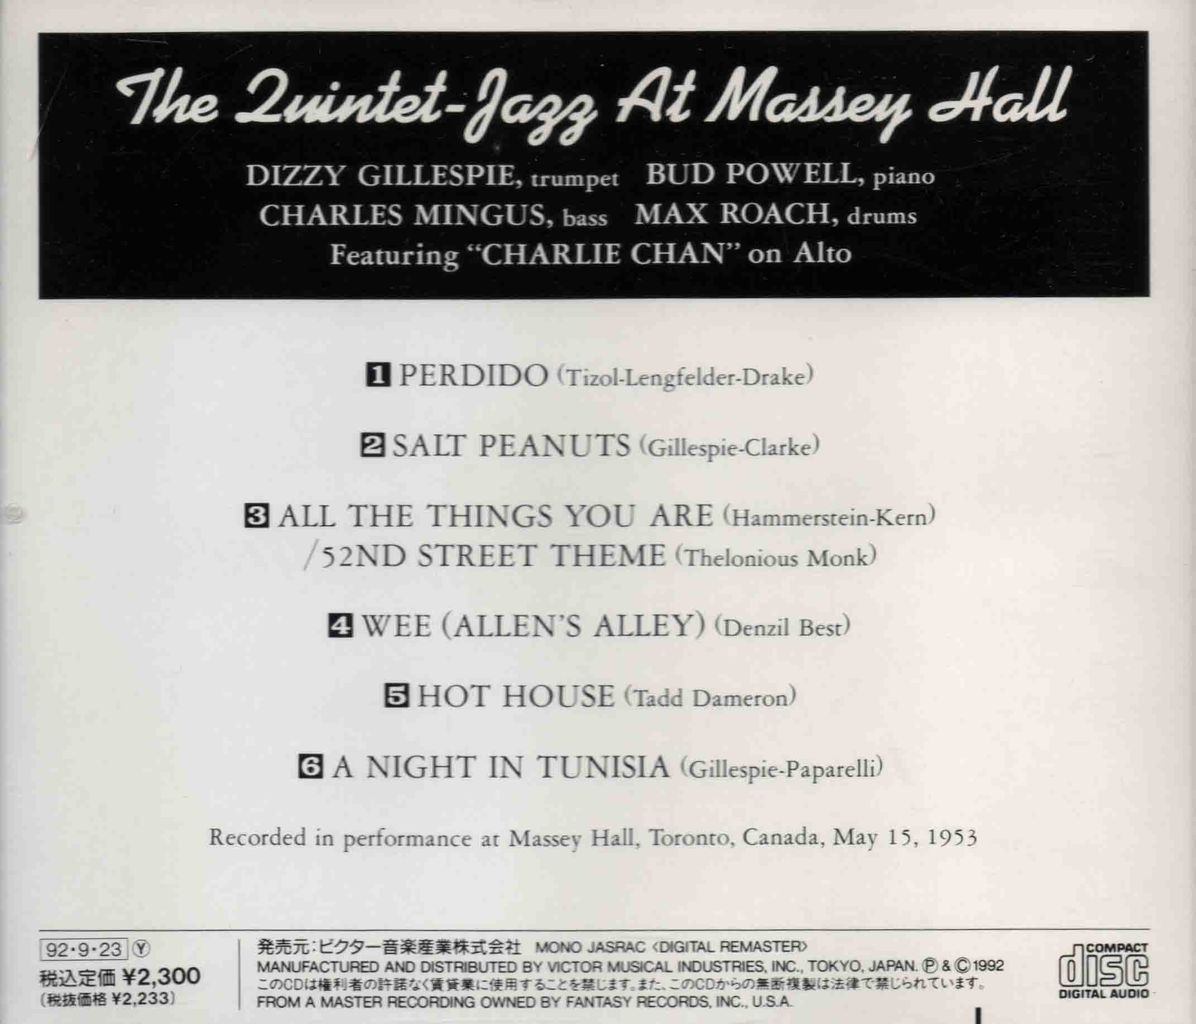 JAZZ AT MASSEY HALL, VOL.1-2